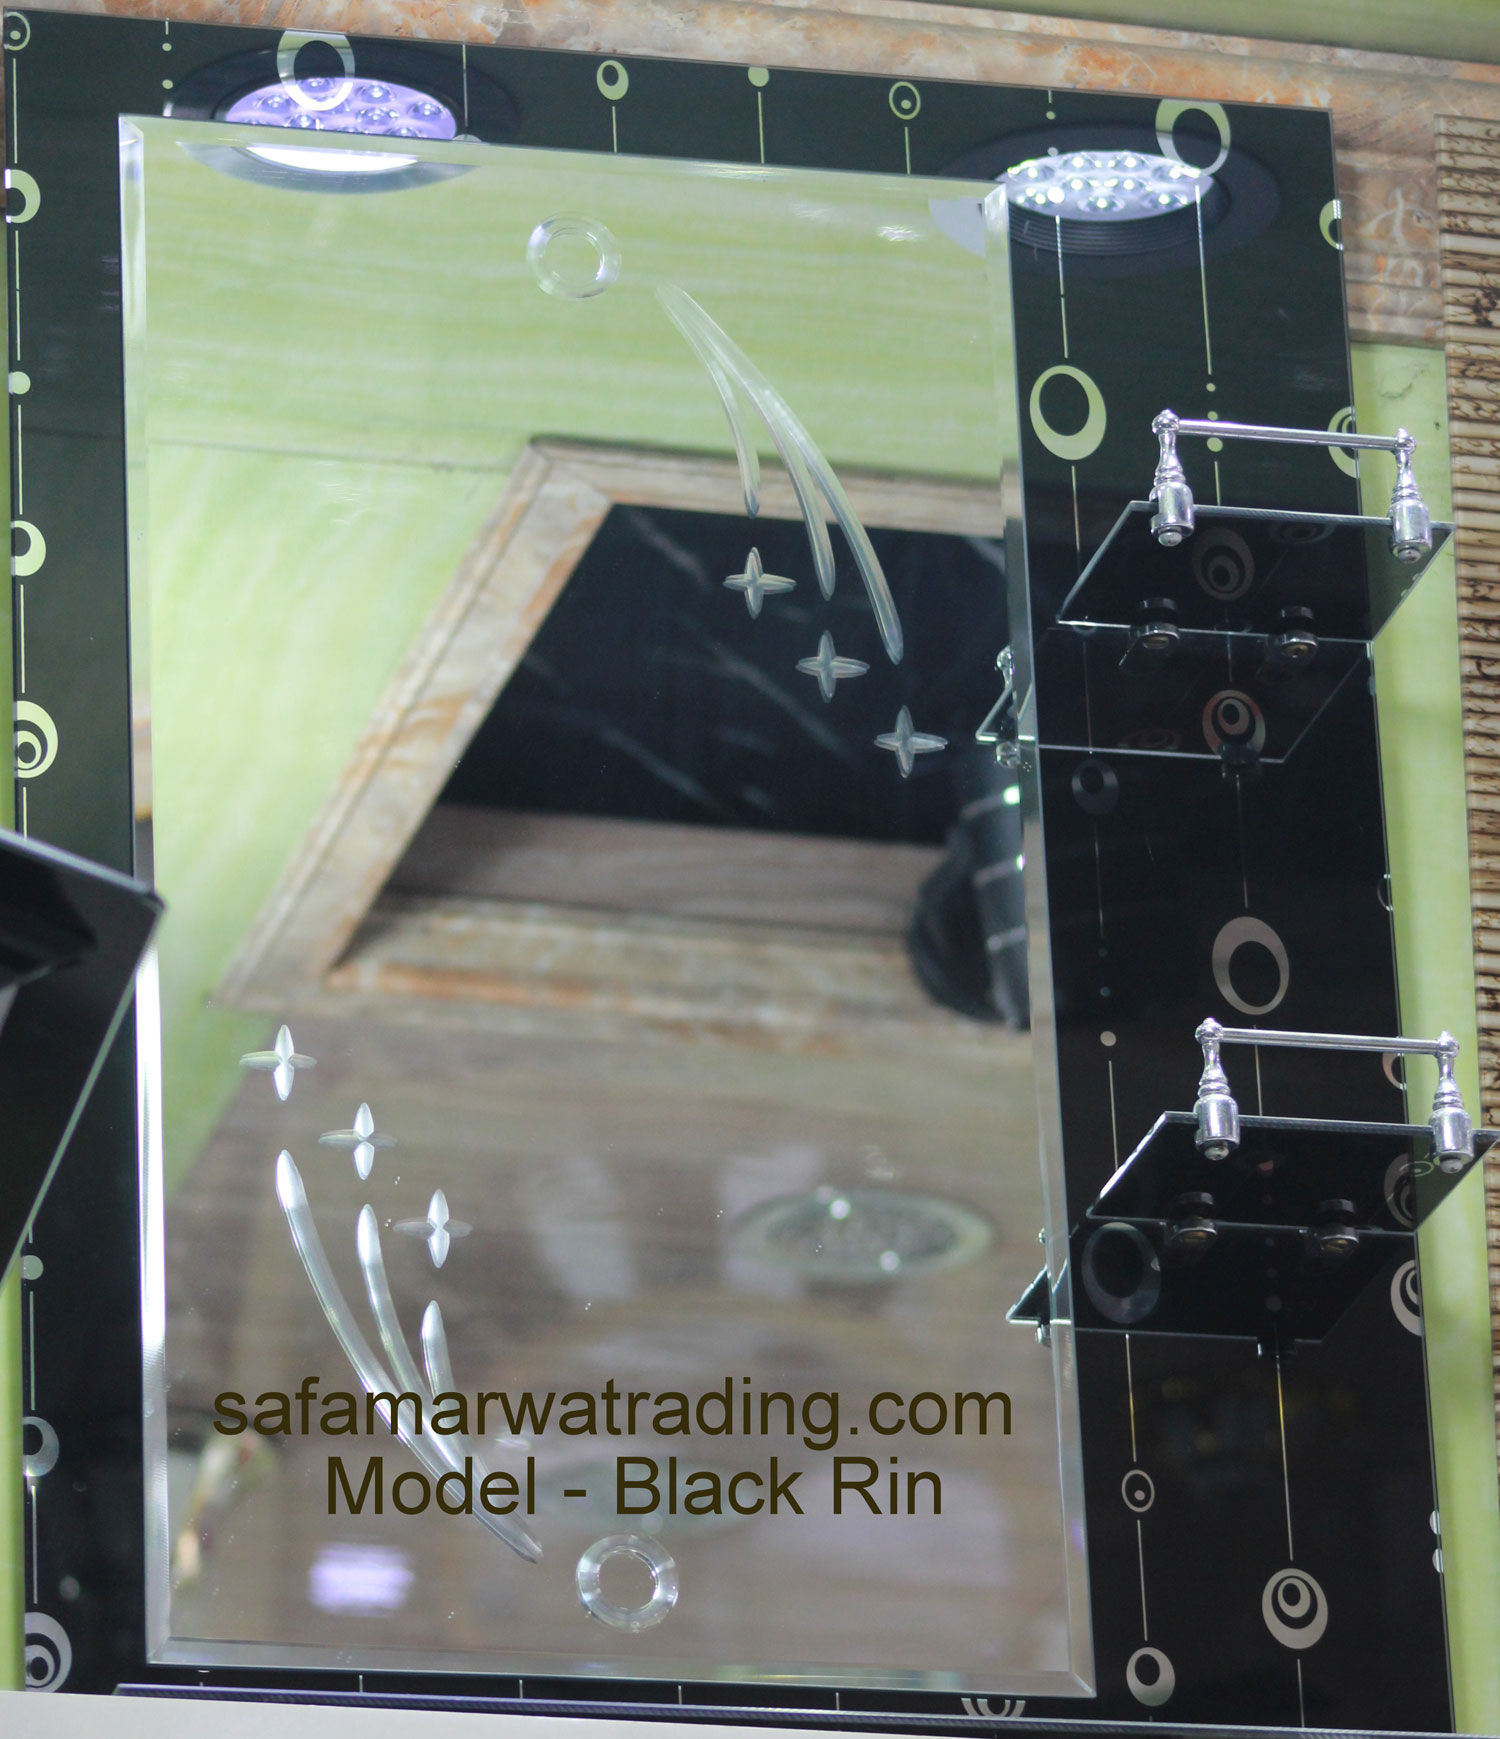 Frame Mirror - Black Rin